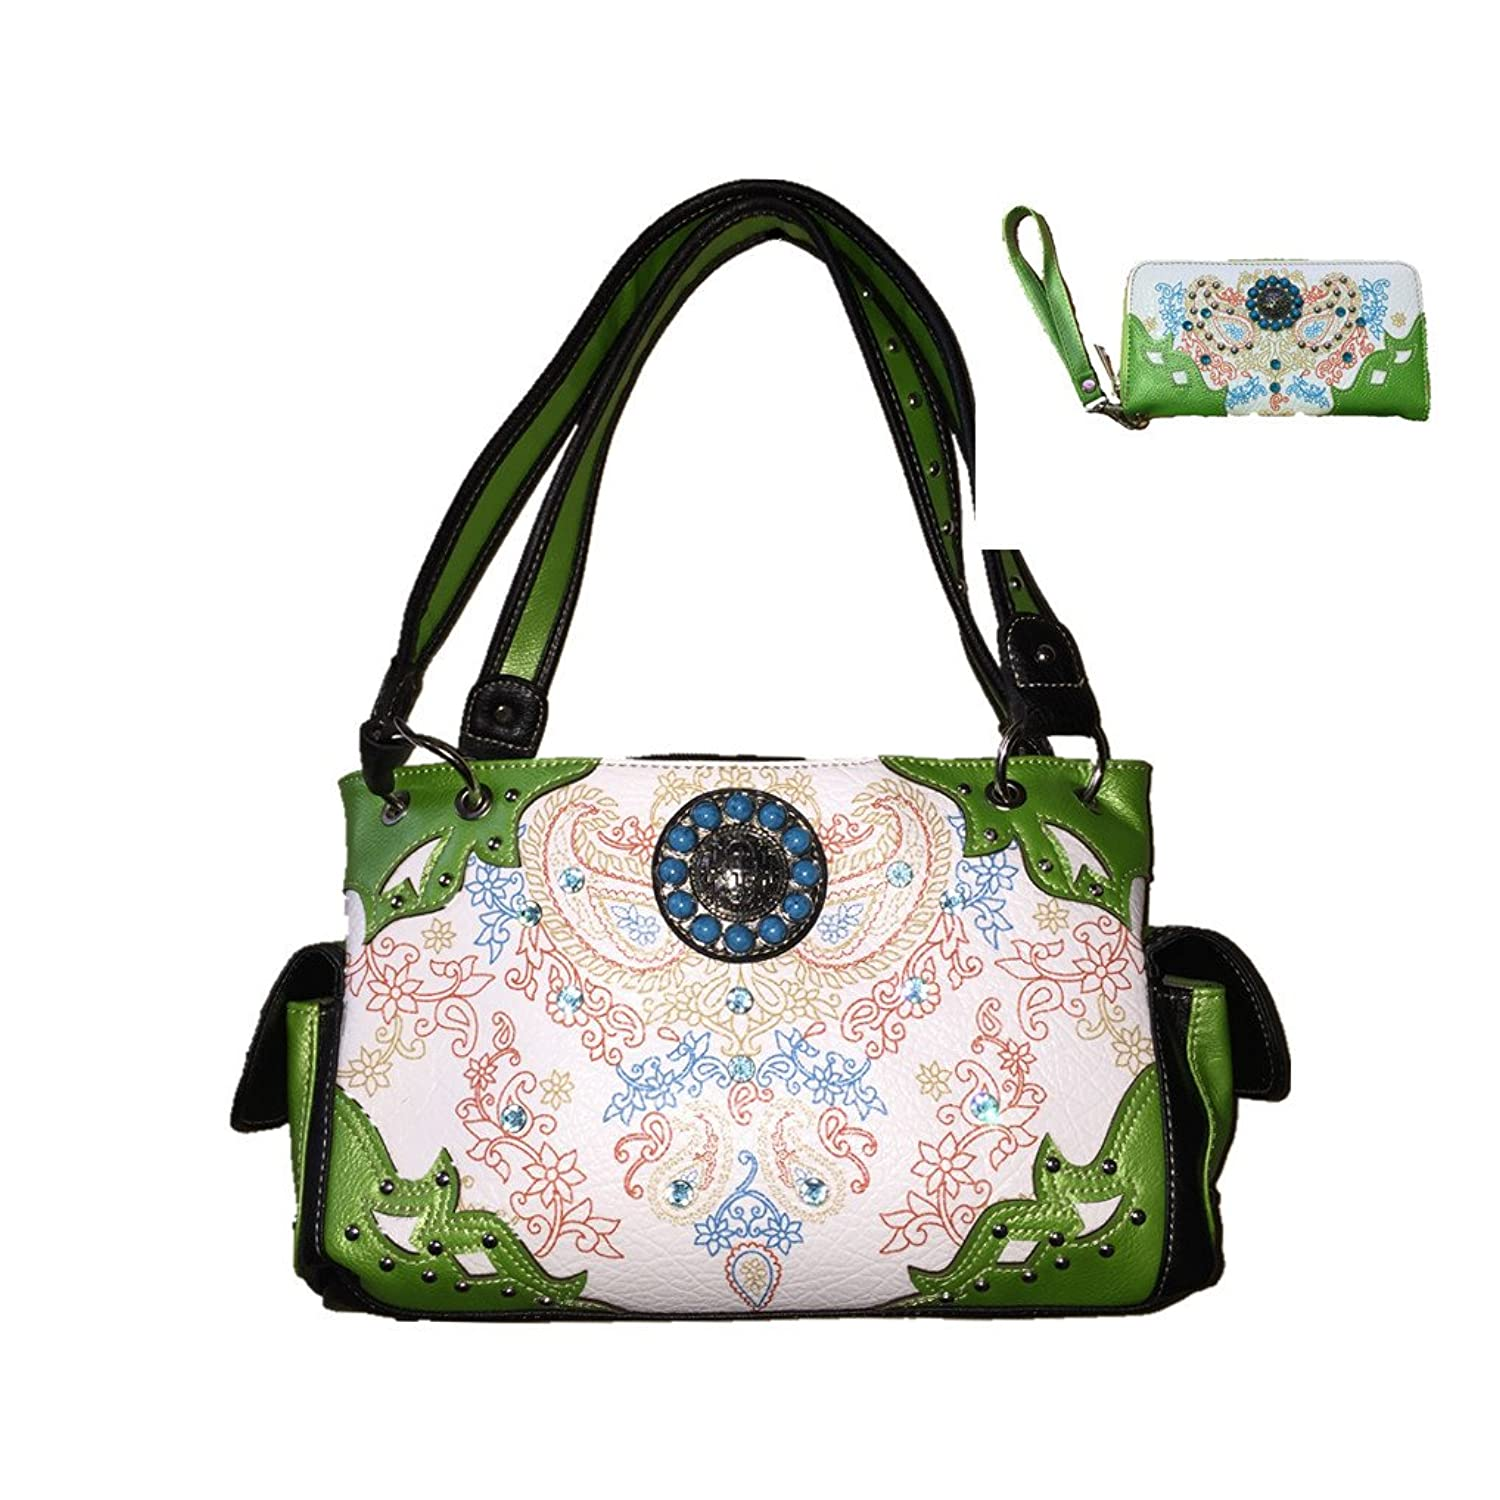 2015 Stylish Rhinestone Concho Floral Concealed Carry Leather Shoulder Handbag Purse and Matching Wallet, One Set in 5 Colors. Black, Blue, Purple, Hot Pink and Light Green